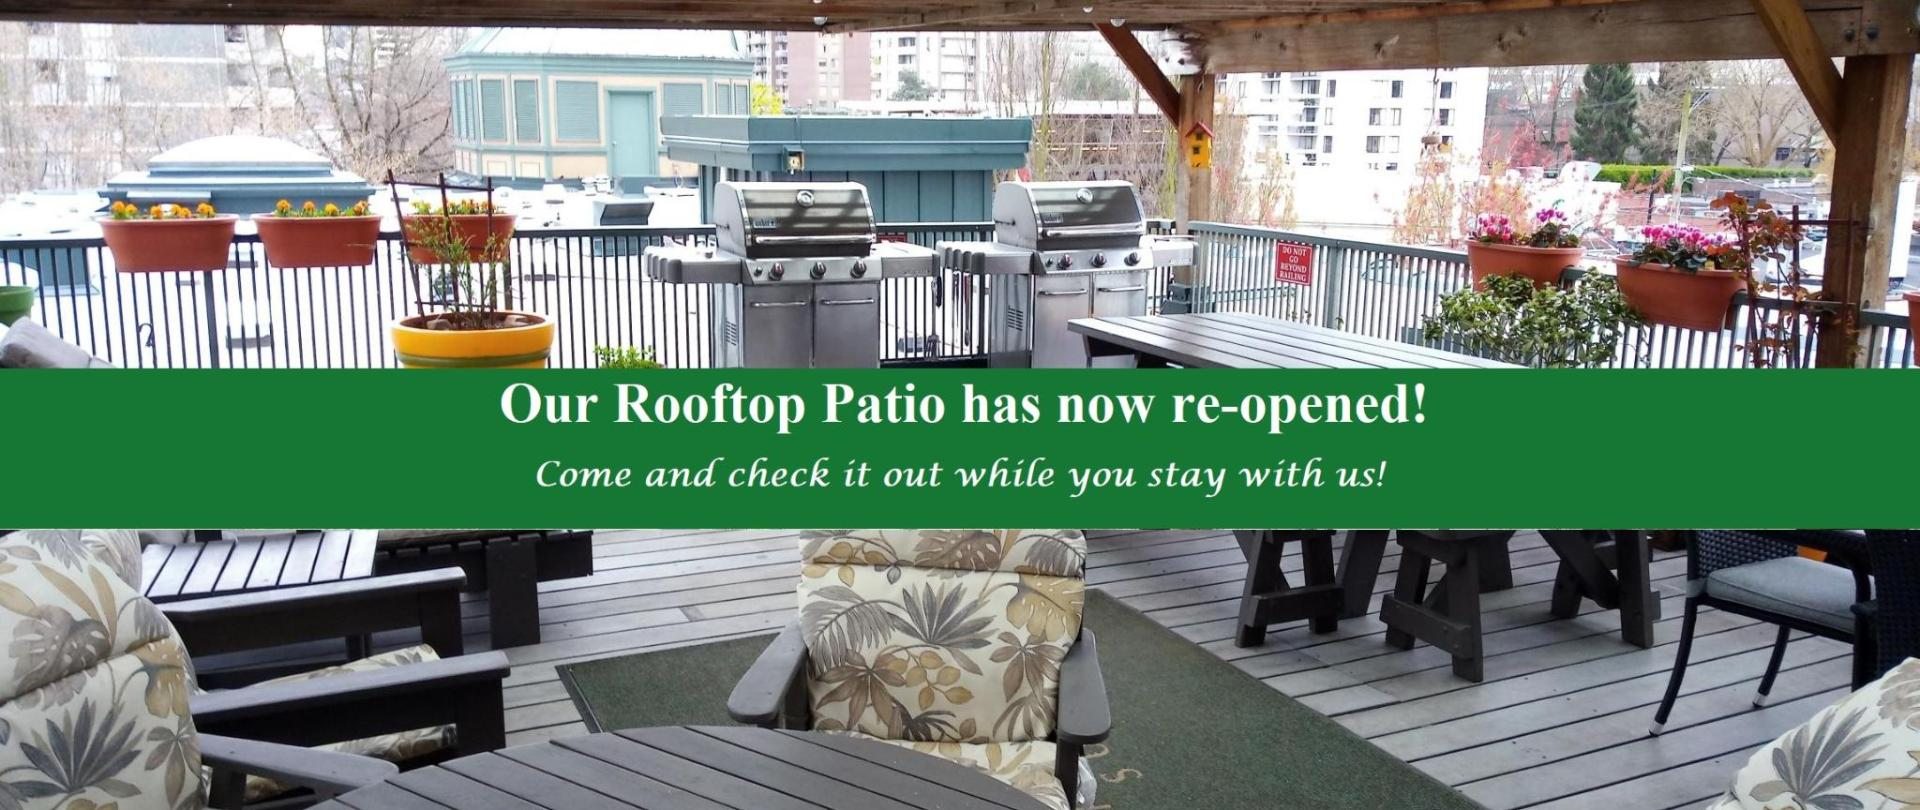 Rooftop patio now open middle.jpg